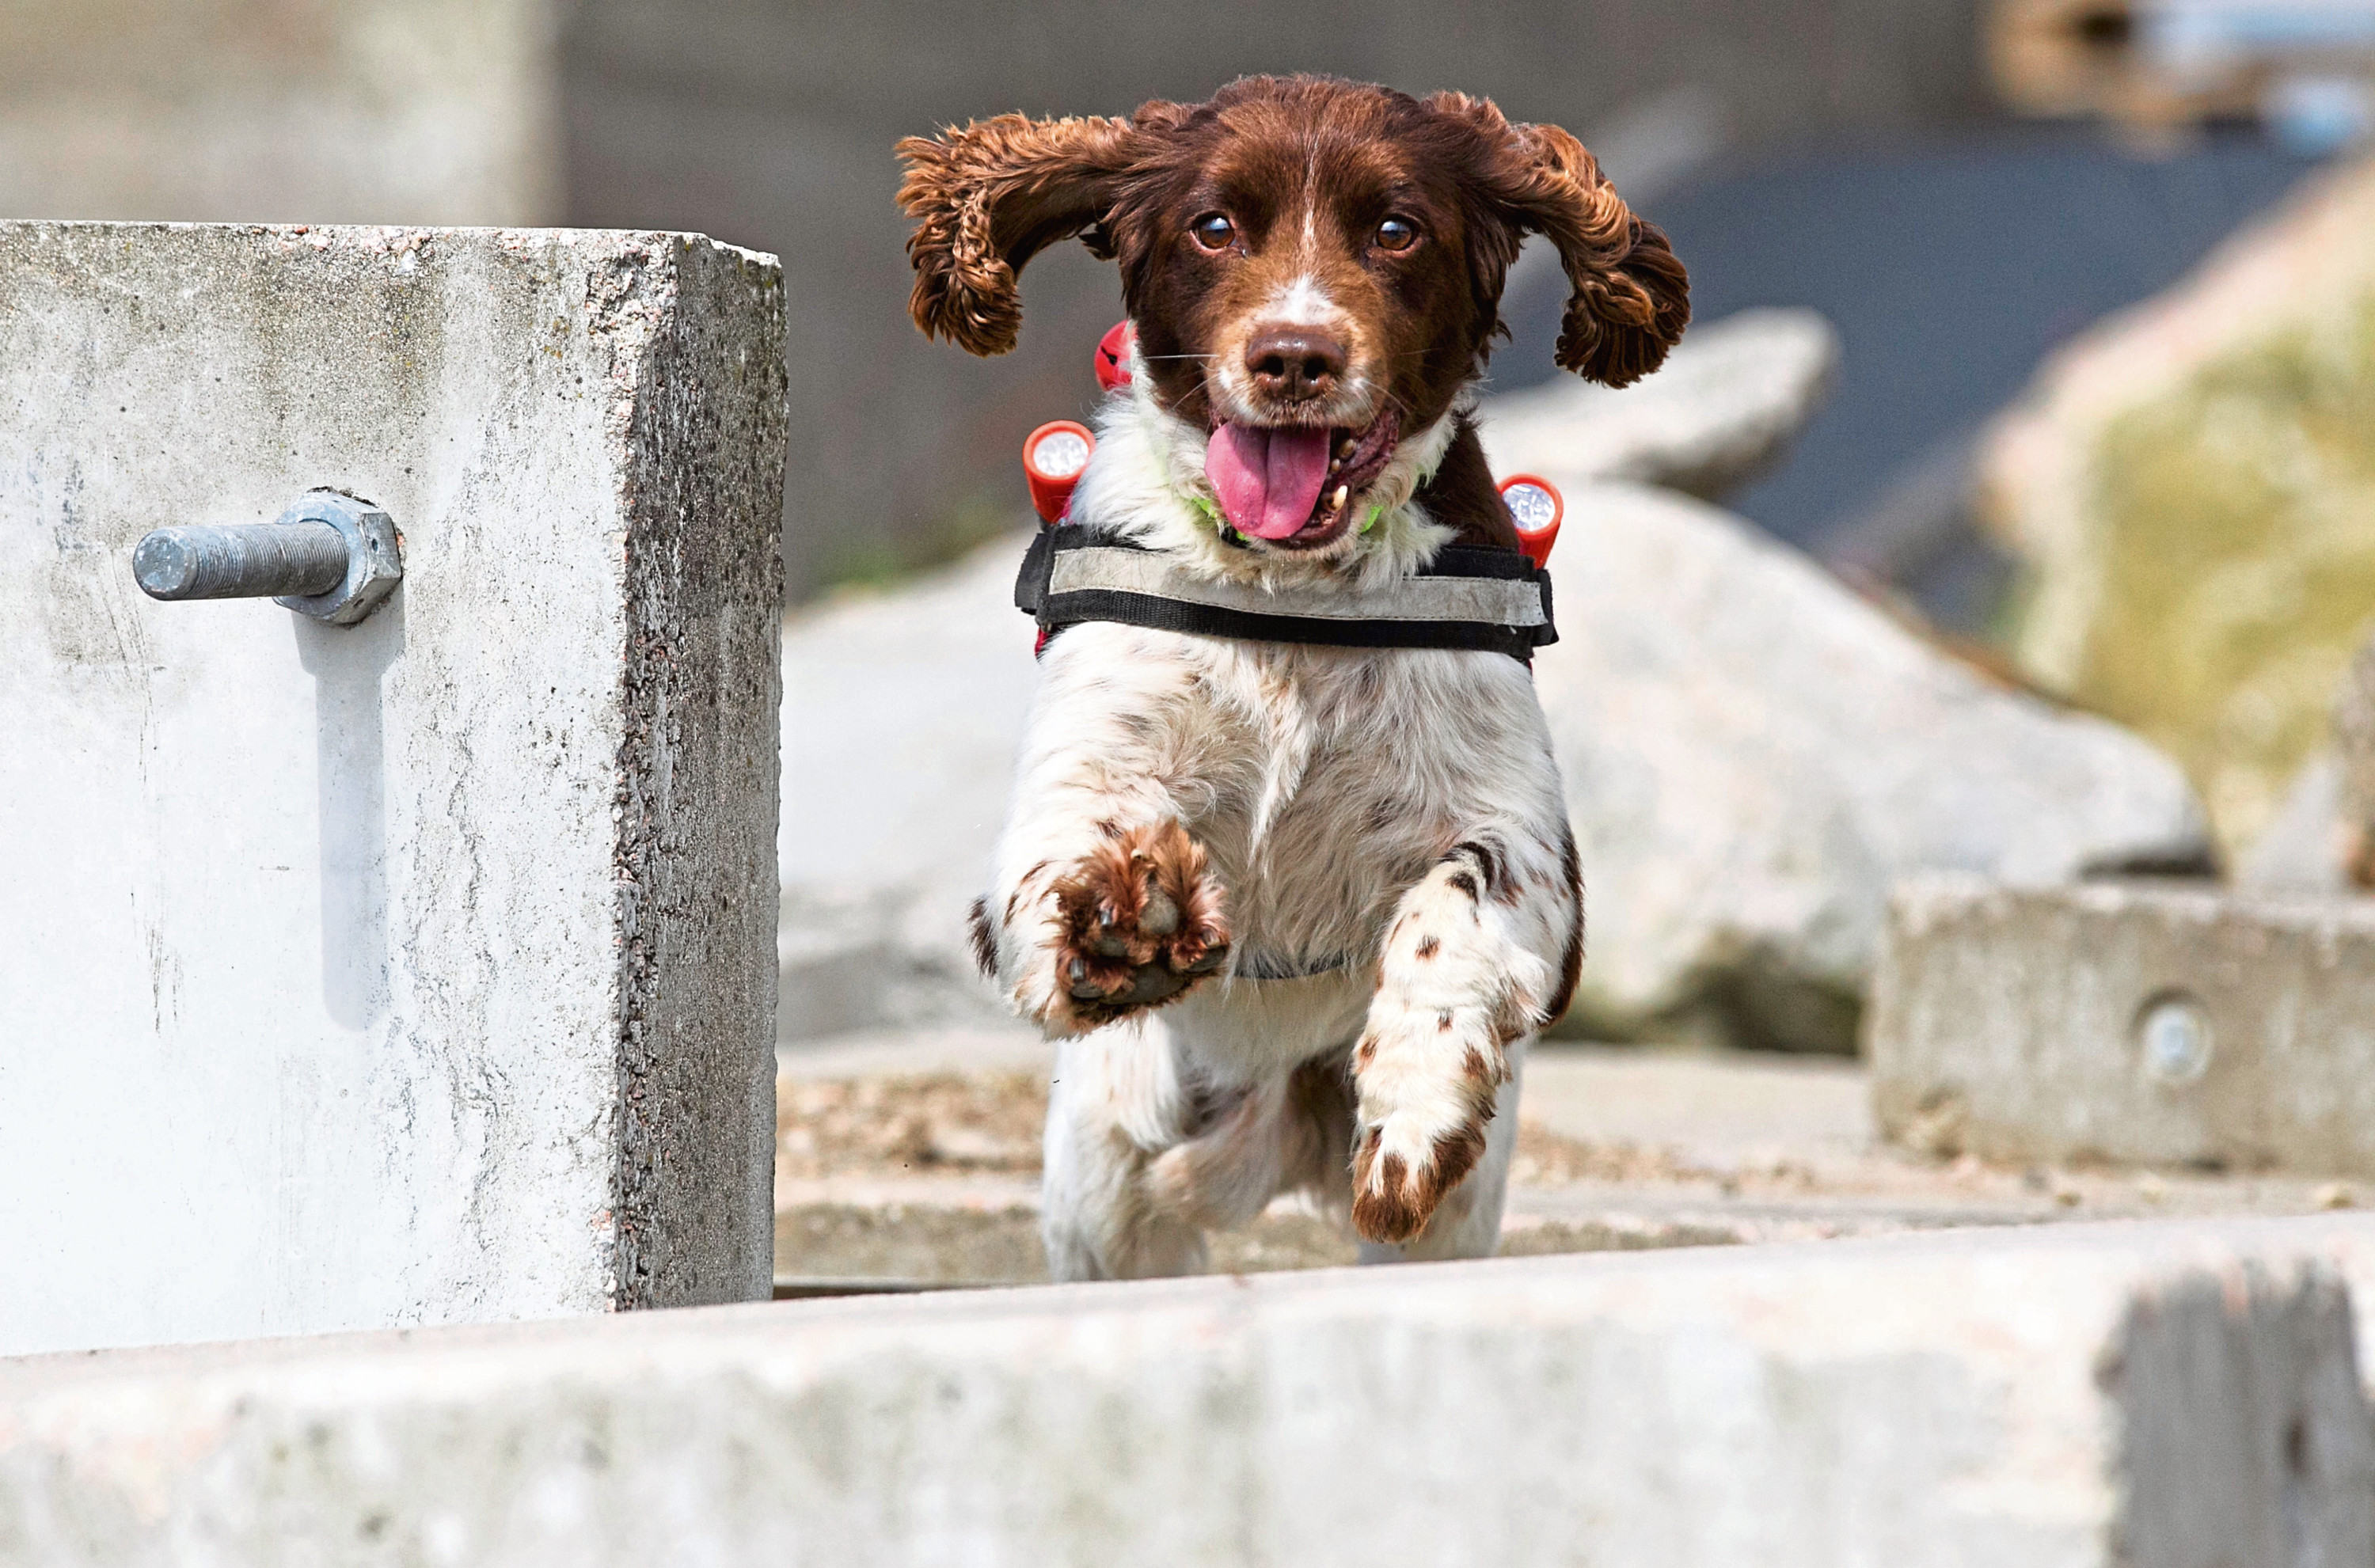 Diesel, the Fire Service's search and rescue dog